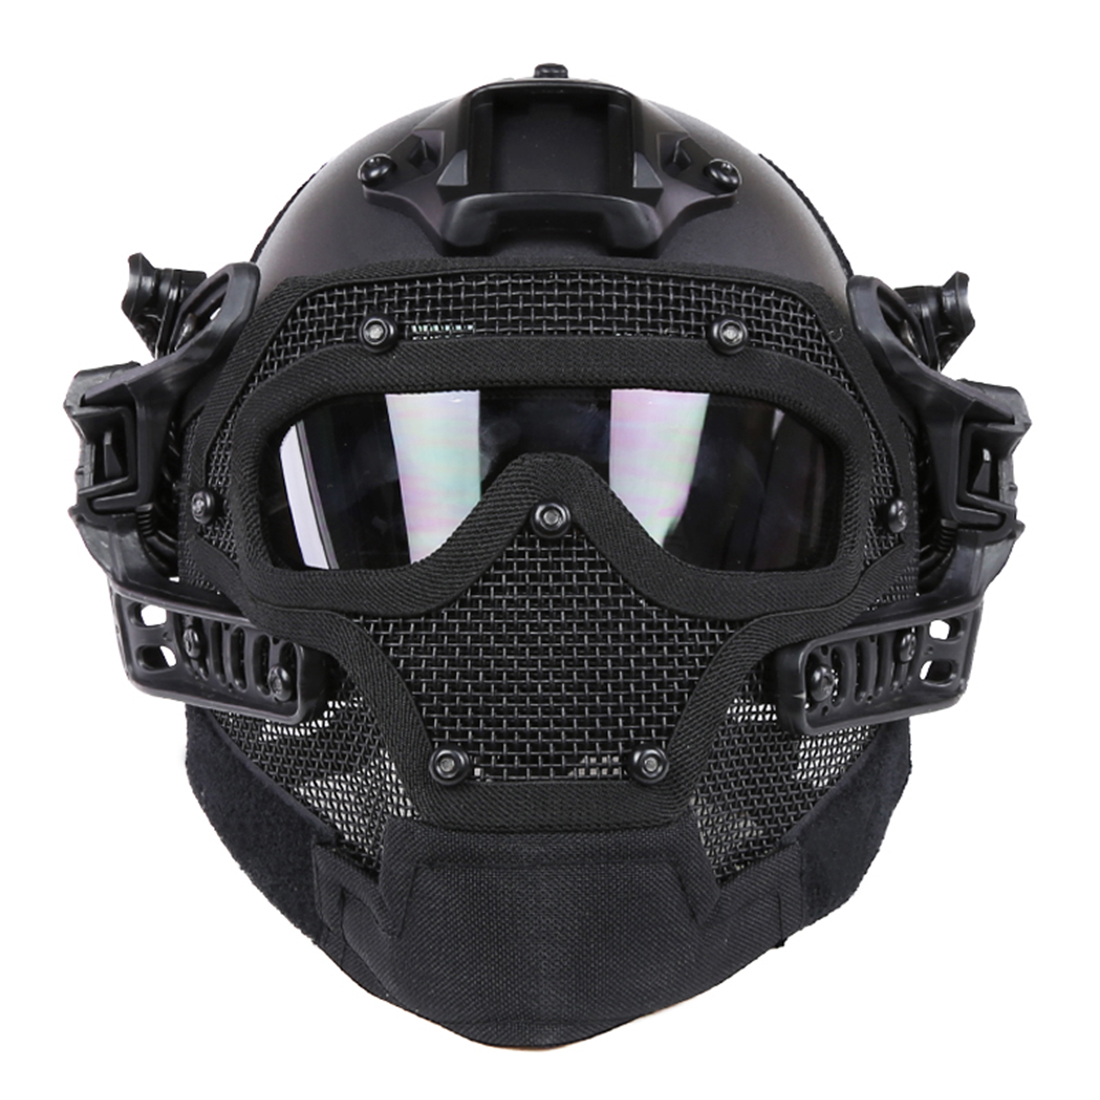 купить Surwish Steel Wire Protective FAST Helmet Suit for Nerf/for Airsoft Outdoor Activity - Black по цене 6011.66 рублей